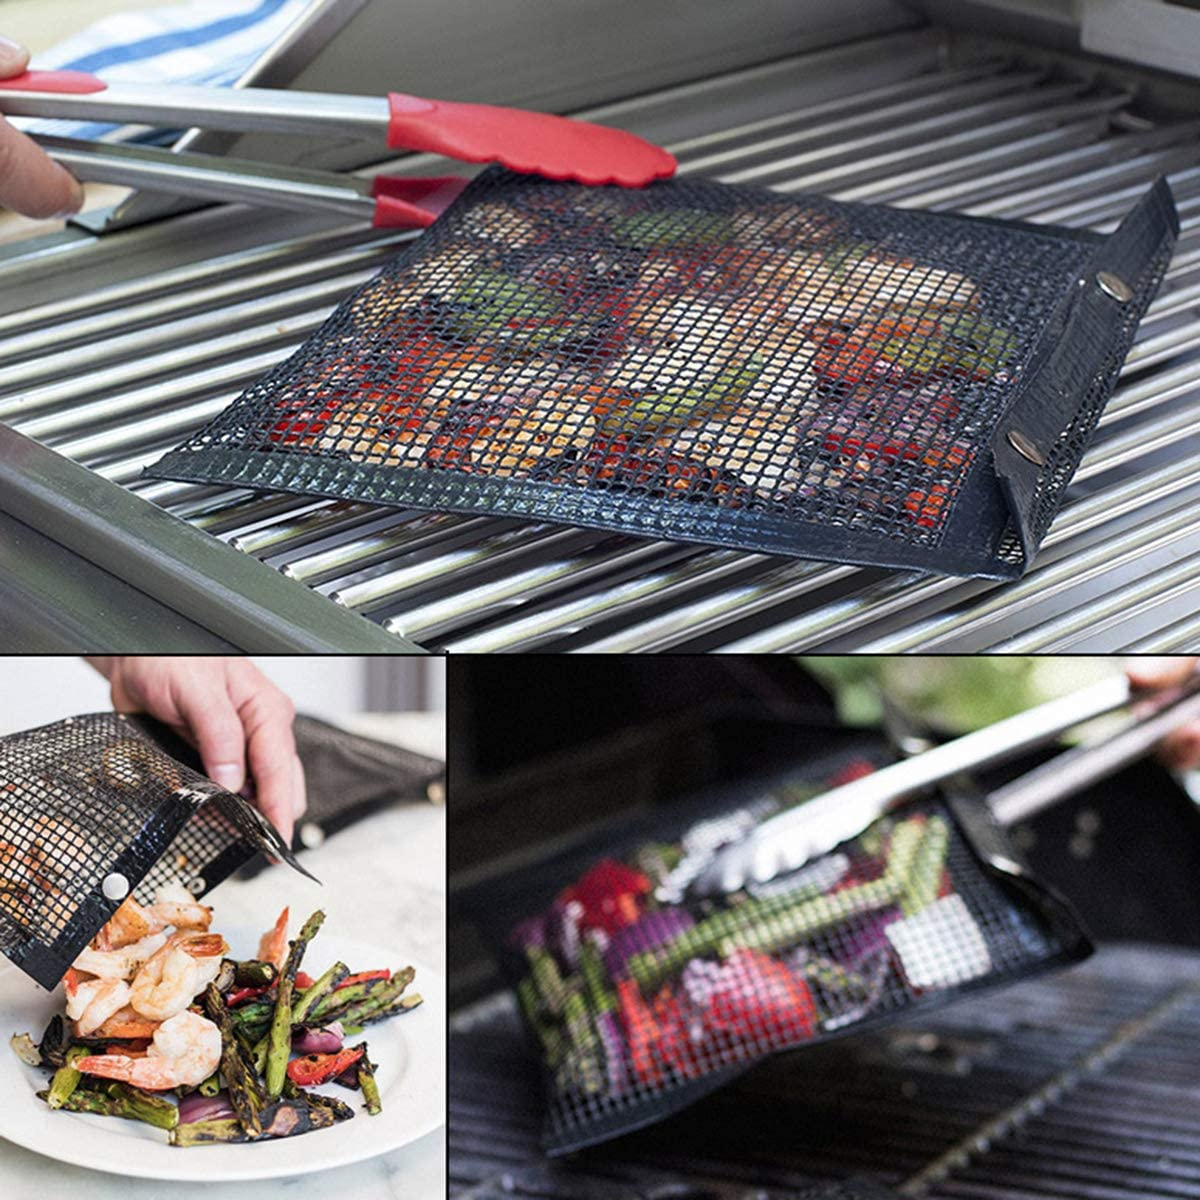 Leyeet Reusable Non-Stick Grilling Mesh Bag Cooking BBQ High temperature grill grid For Outdoor Picnic